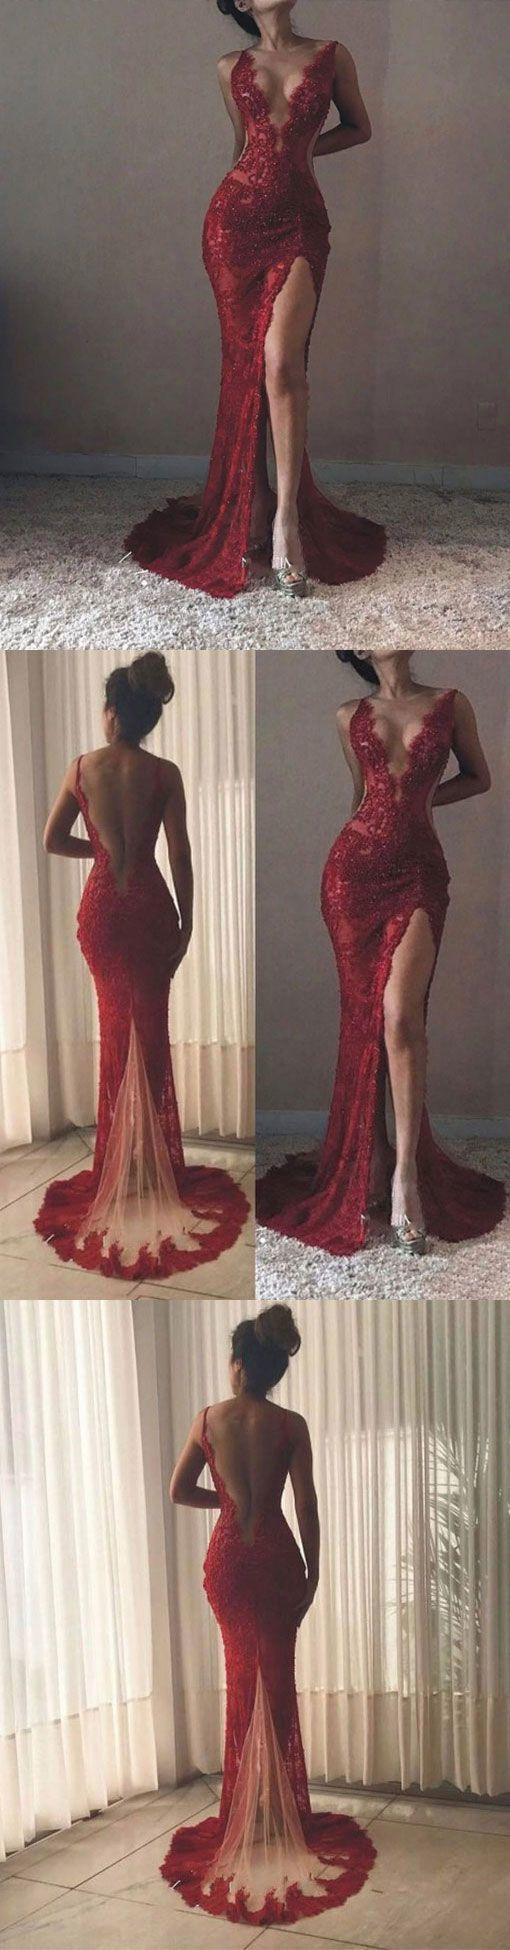 Backless Split Slit Lace Prom Dresses, Formal Evening Dresses